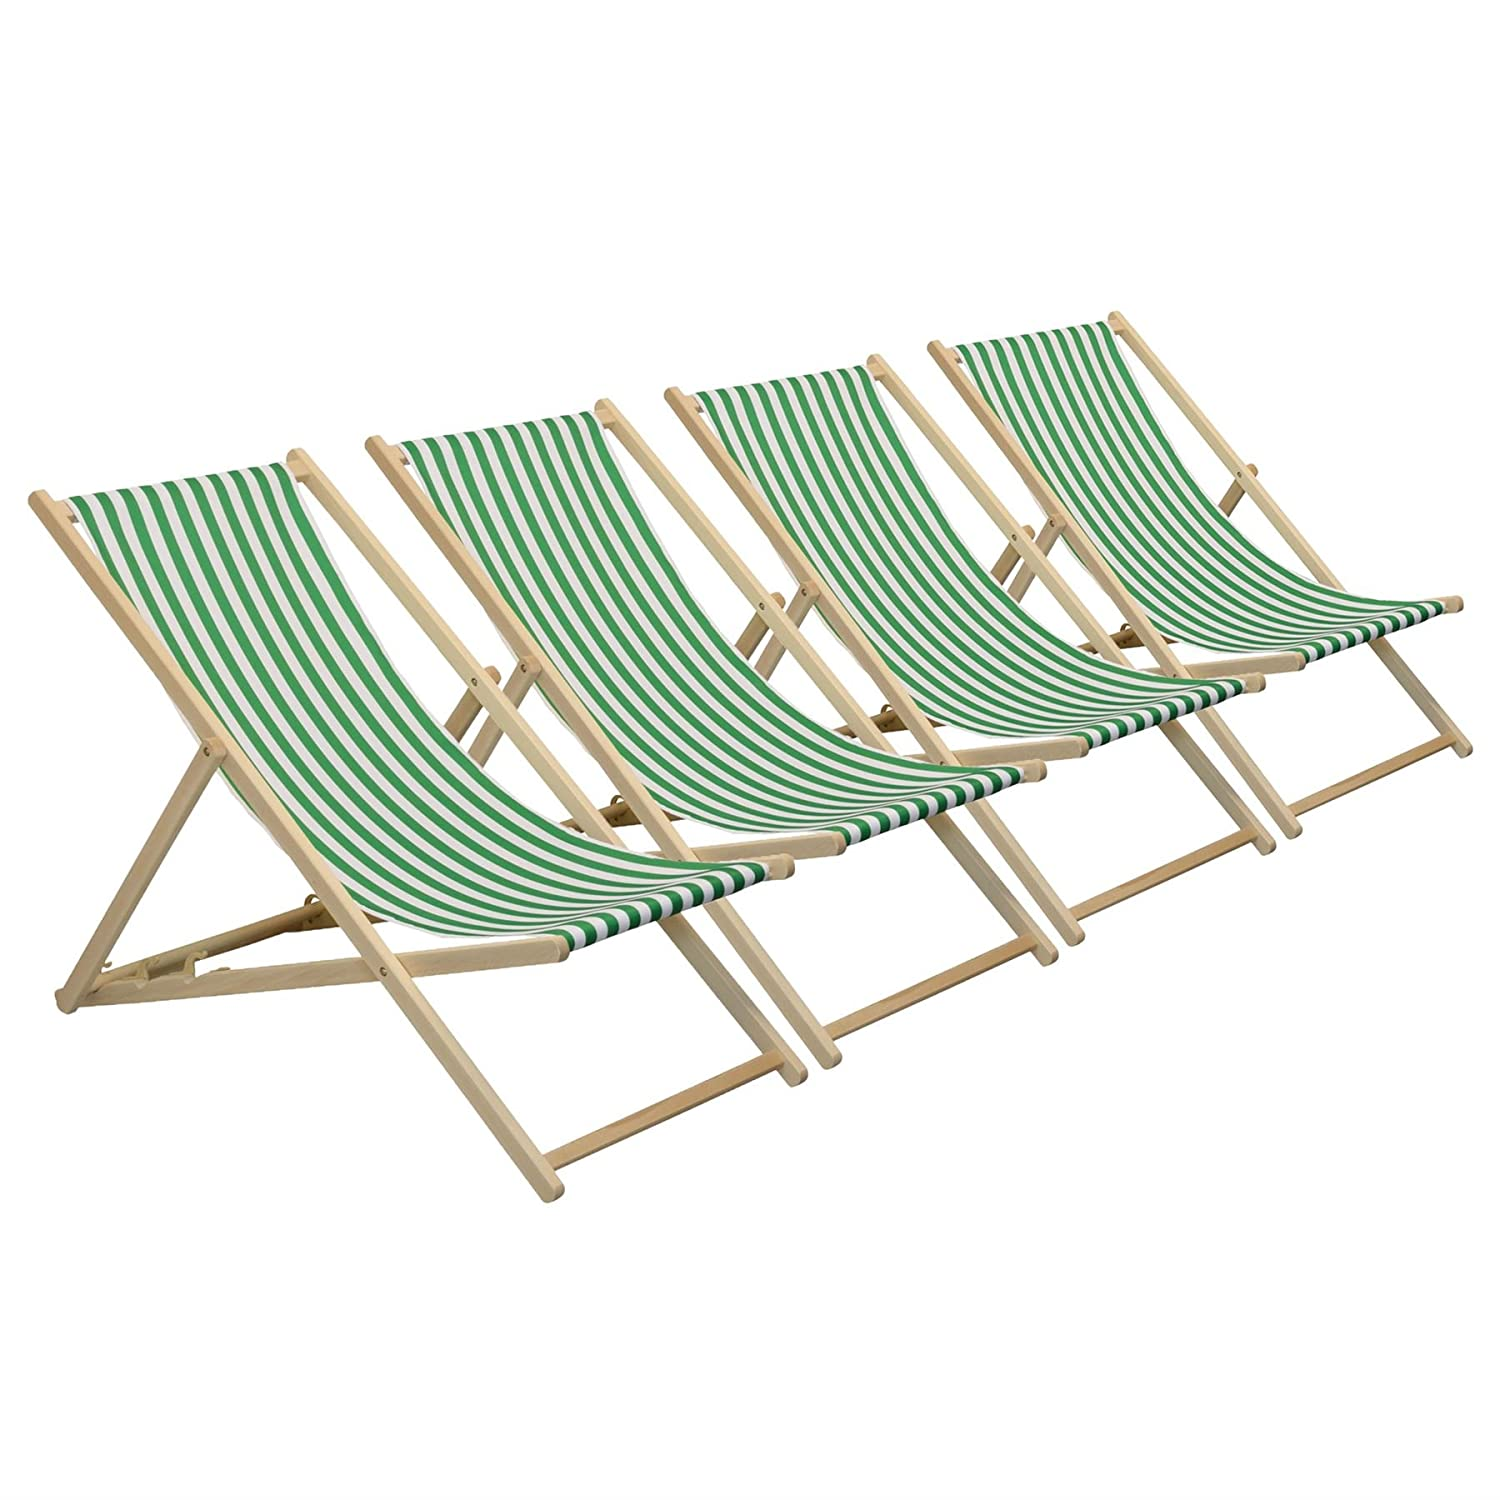 Harbour Housewares Traditional Adjustable Garden/Beach-style Deck Chair - Green/White Stripe - Pack of 4